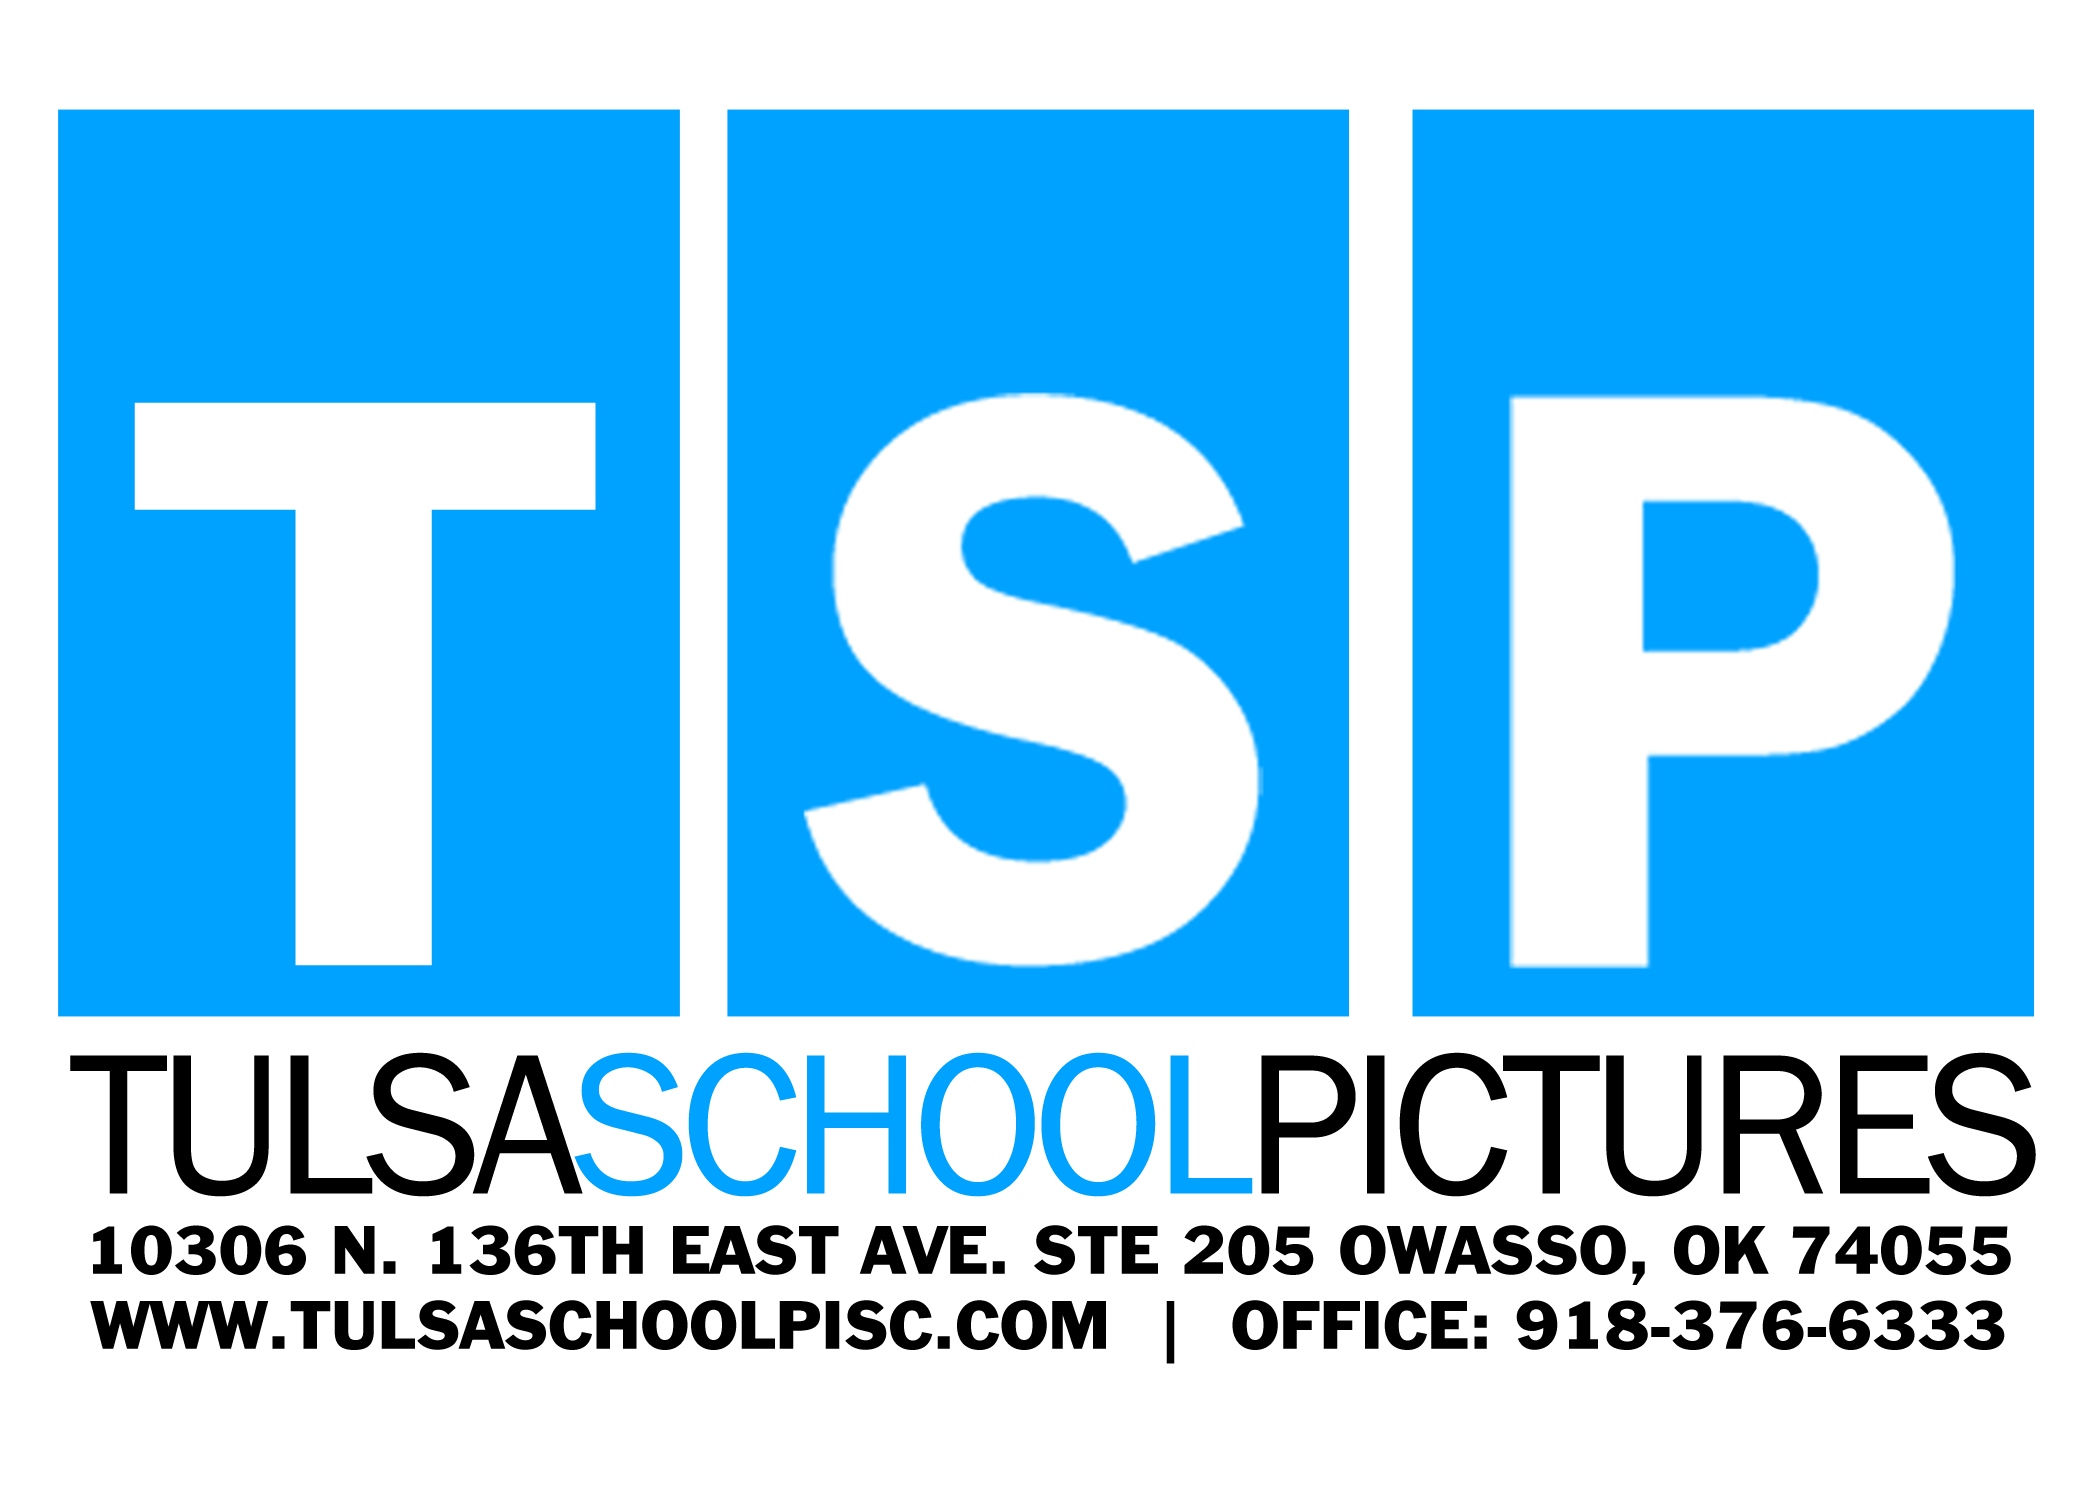 Tulsa School Pictures